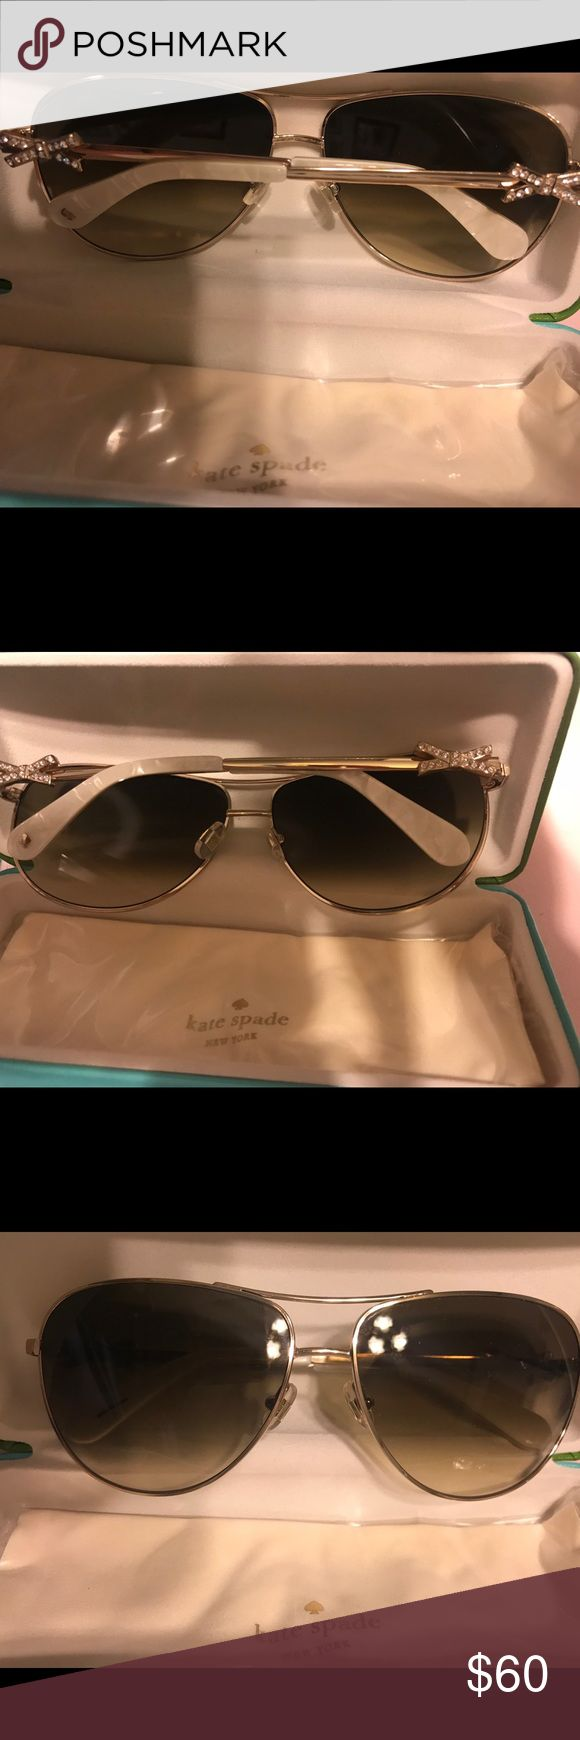 Kate Spade Sunglasses ♠️ ♠️ Kate Spade frame gold frame, white temple covers, & brown lenses. Frame  name is Circe2s  eye size 59 bridge 13 temple 130 brand new !!! kate spade Accessories Sunglasses